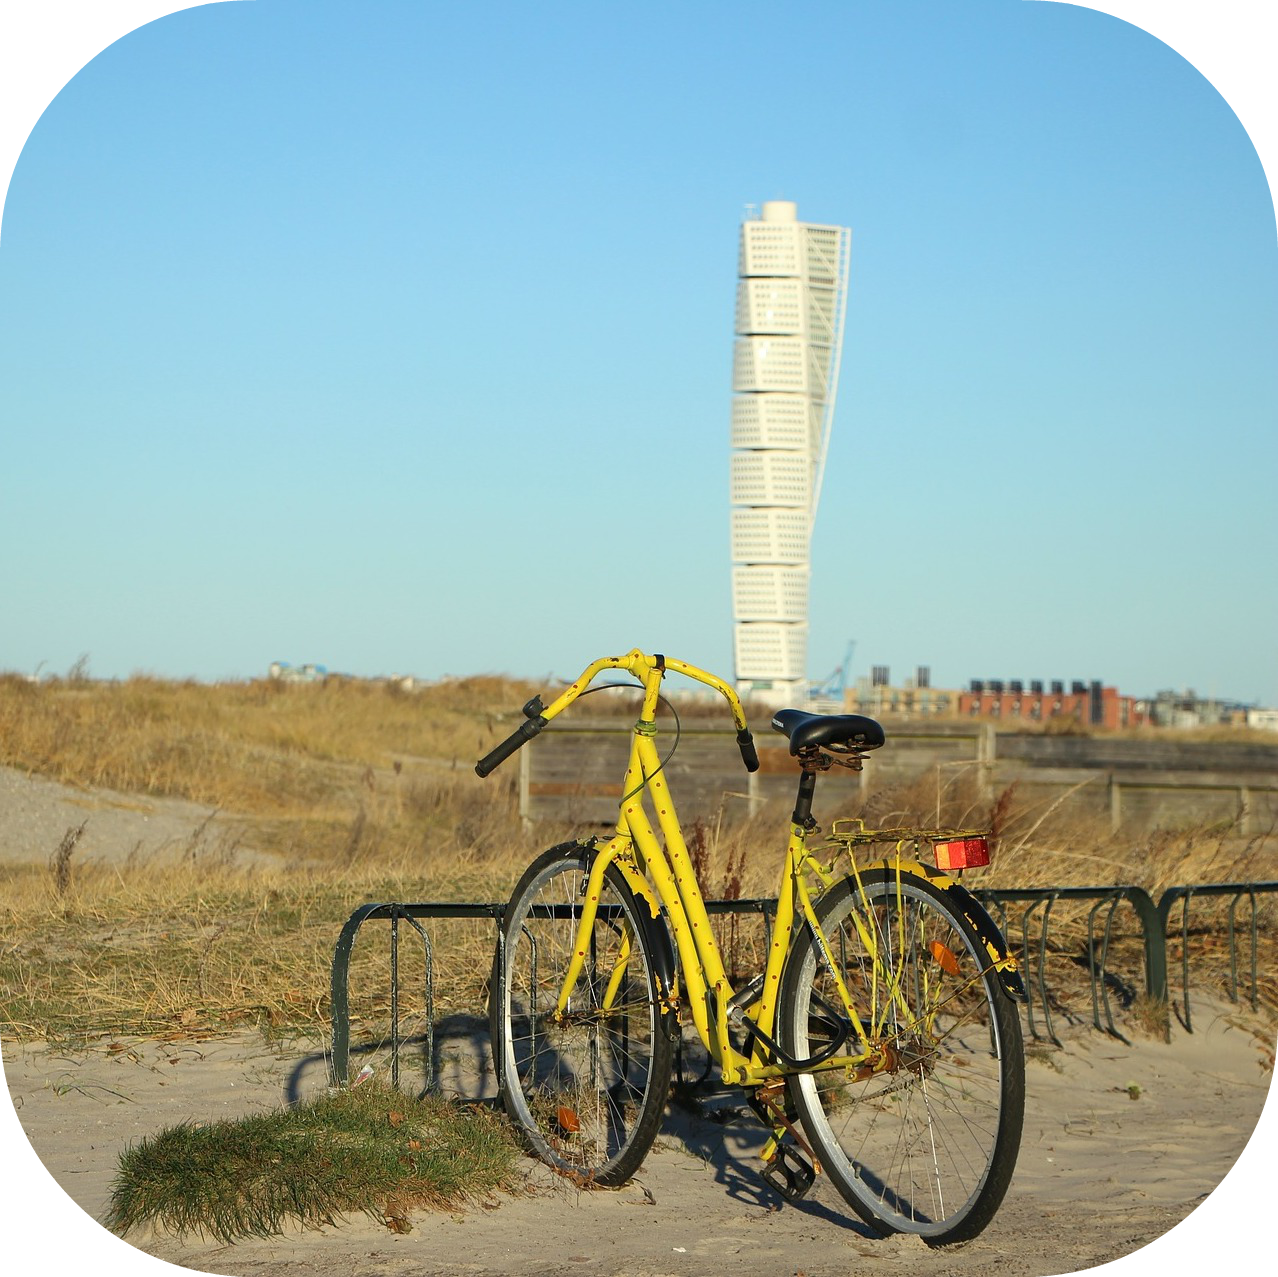 rounded_corners_bike_turning torso.png